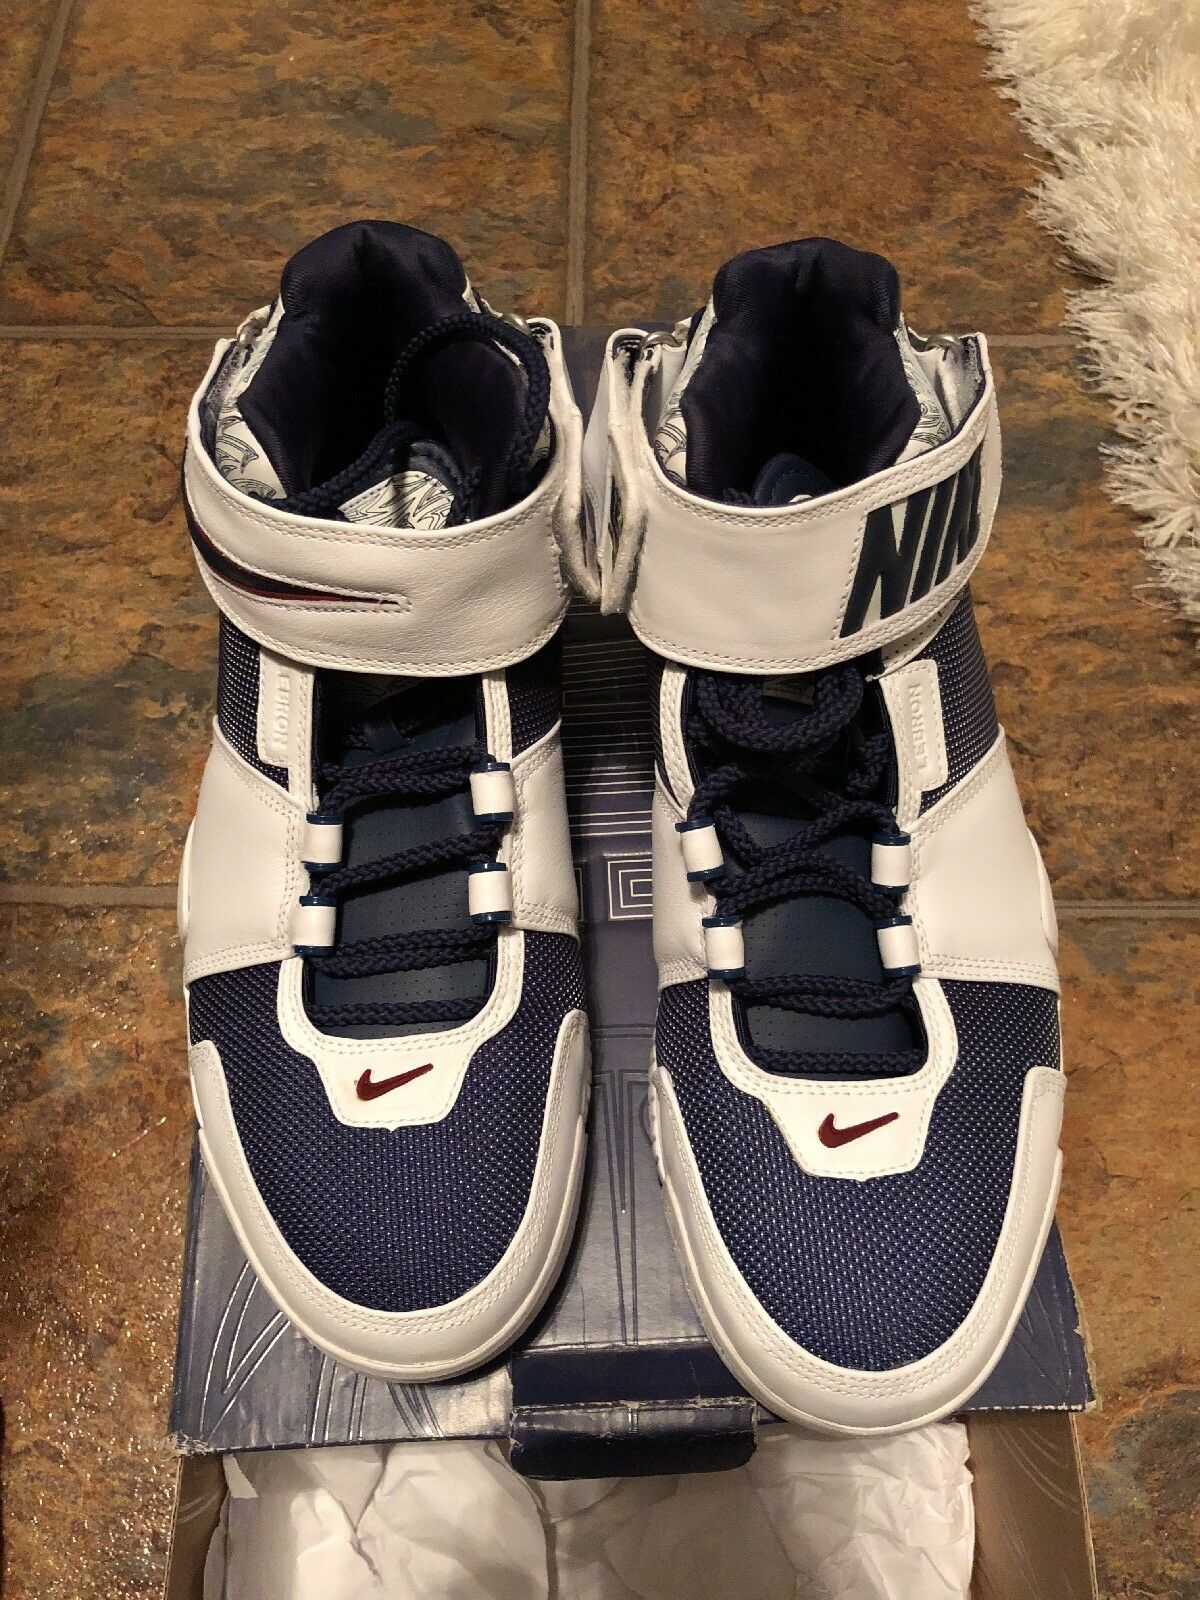 Lebron Zoom 2 Mens Size 11.0 Deadstock and RARE. 100% Authentic